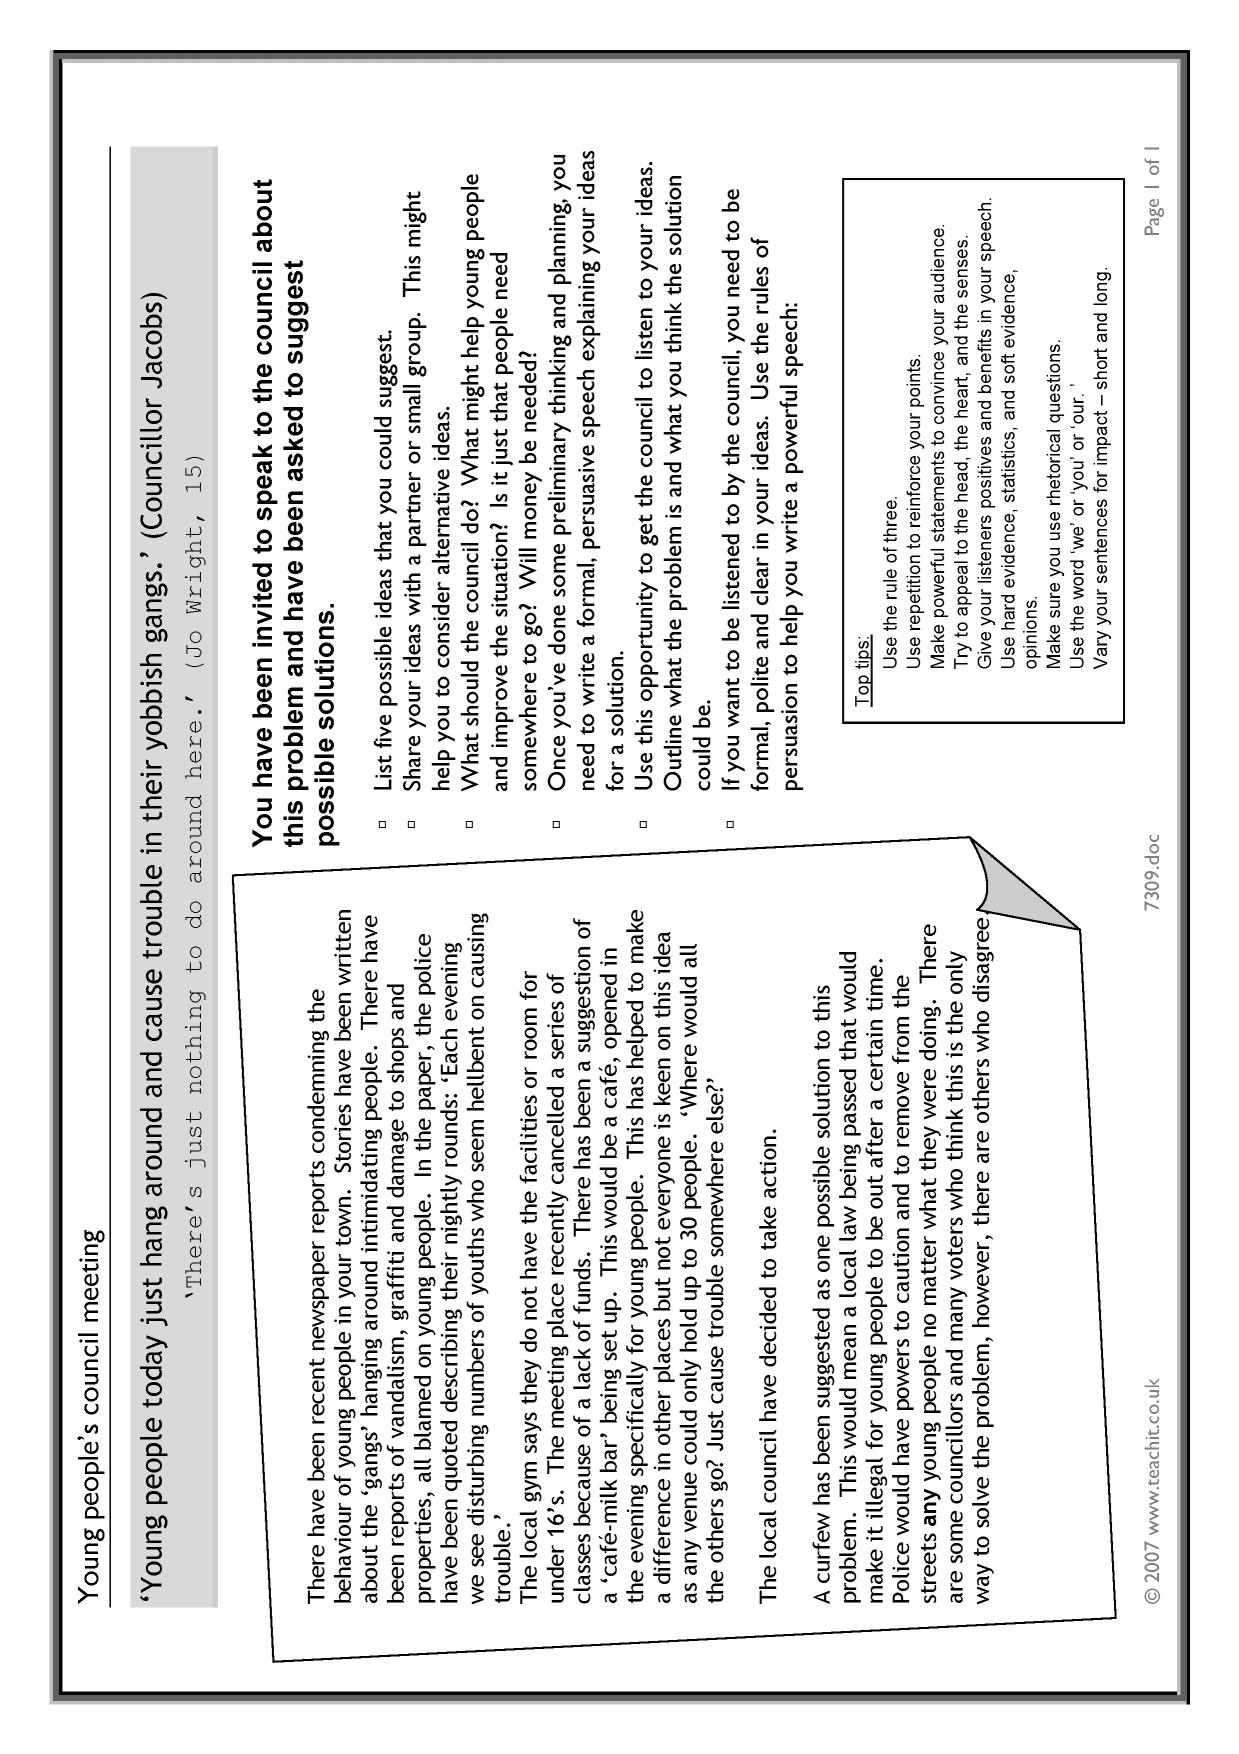 Fun Integer Worksheets Ks  Argument And Persuasive Writing  Teachit English Anti Bullying Worksheet Pdf with Difficult Color By Number Worksheets Pdf  Preview Online Budget Worksheet Excel